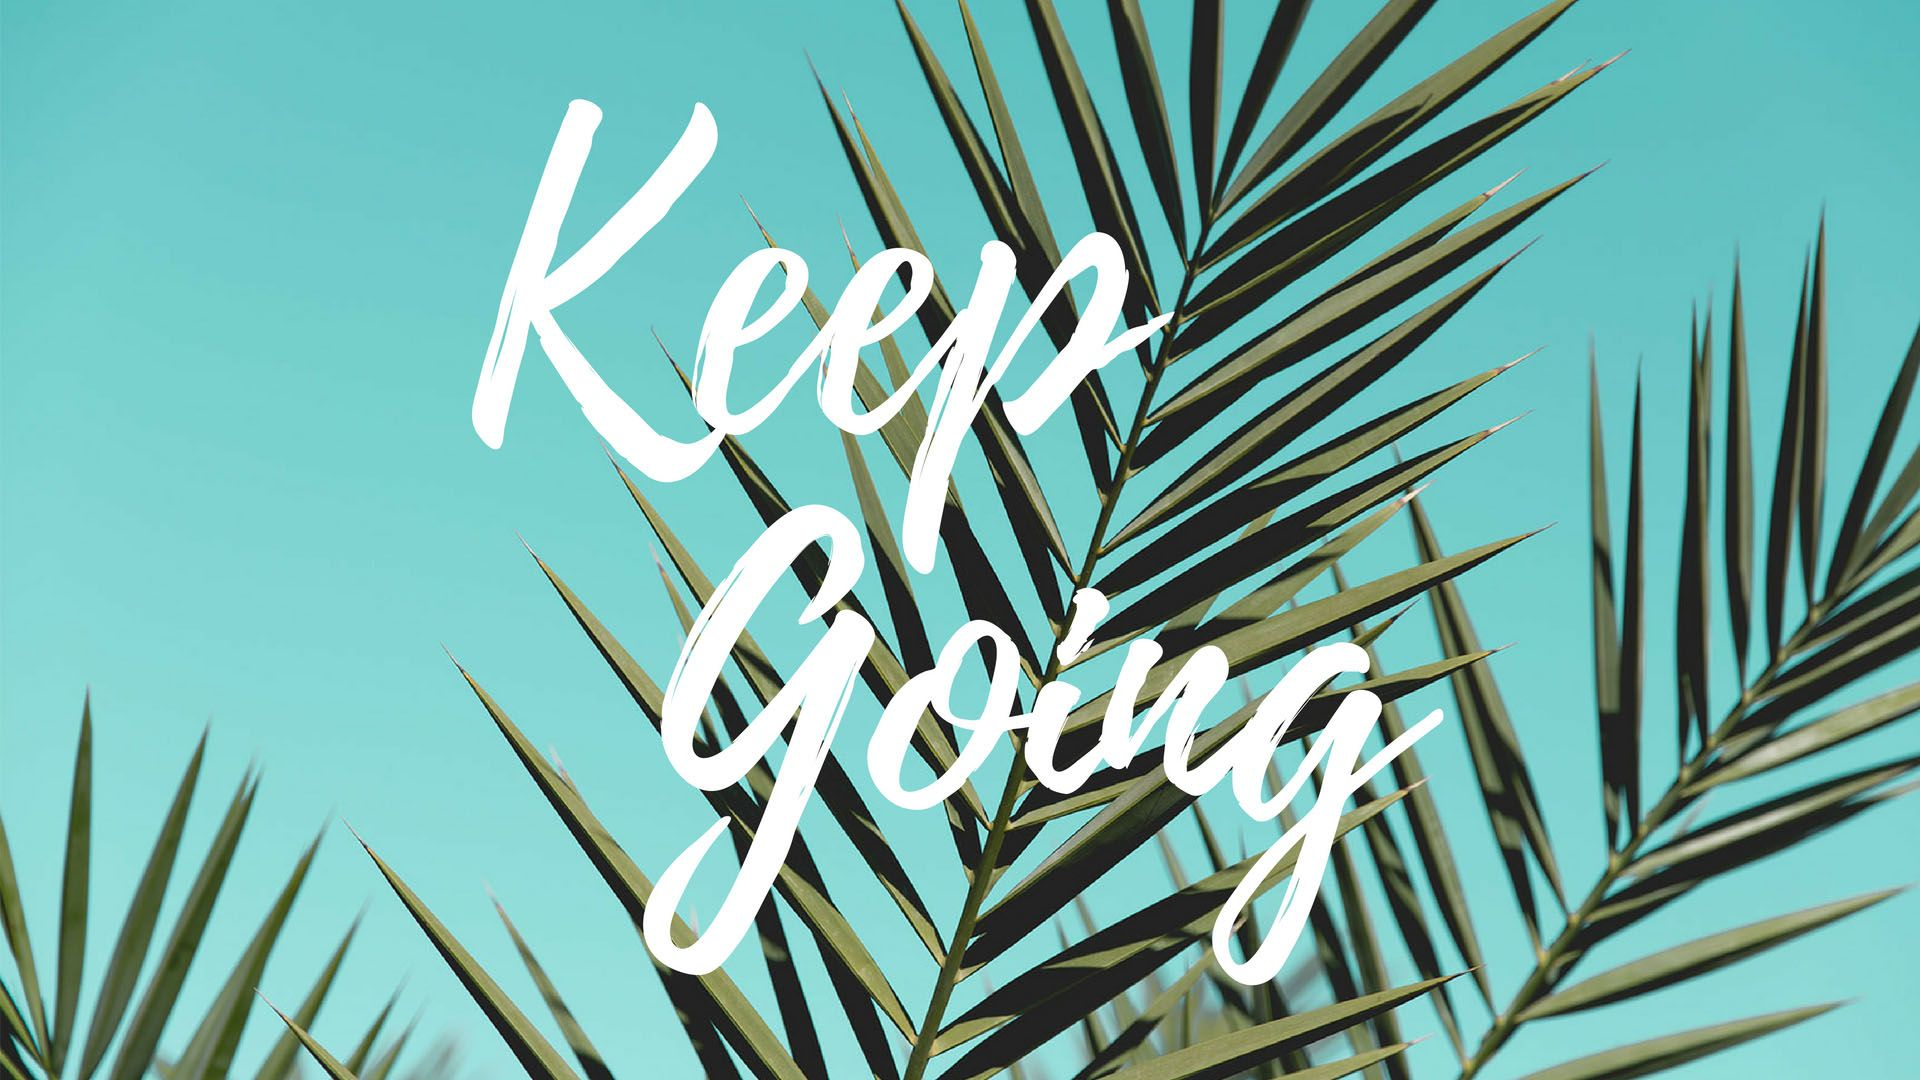 Free download Keep Going Quote Desktop Mac Wallpapers by preppywallpapers [1920x1080] for your Desktop, Mobile & Tablet